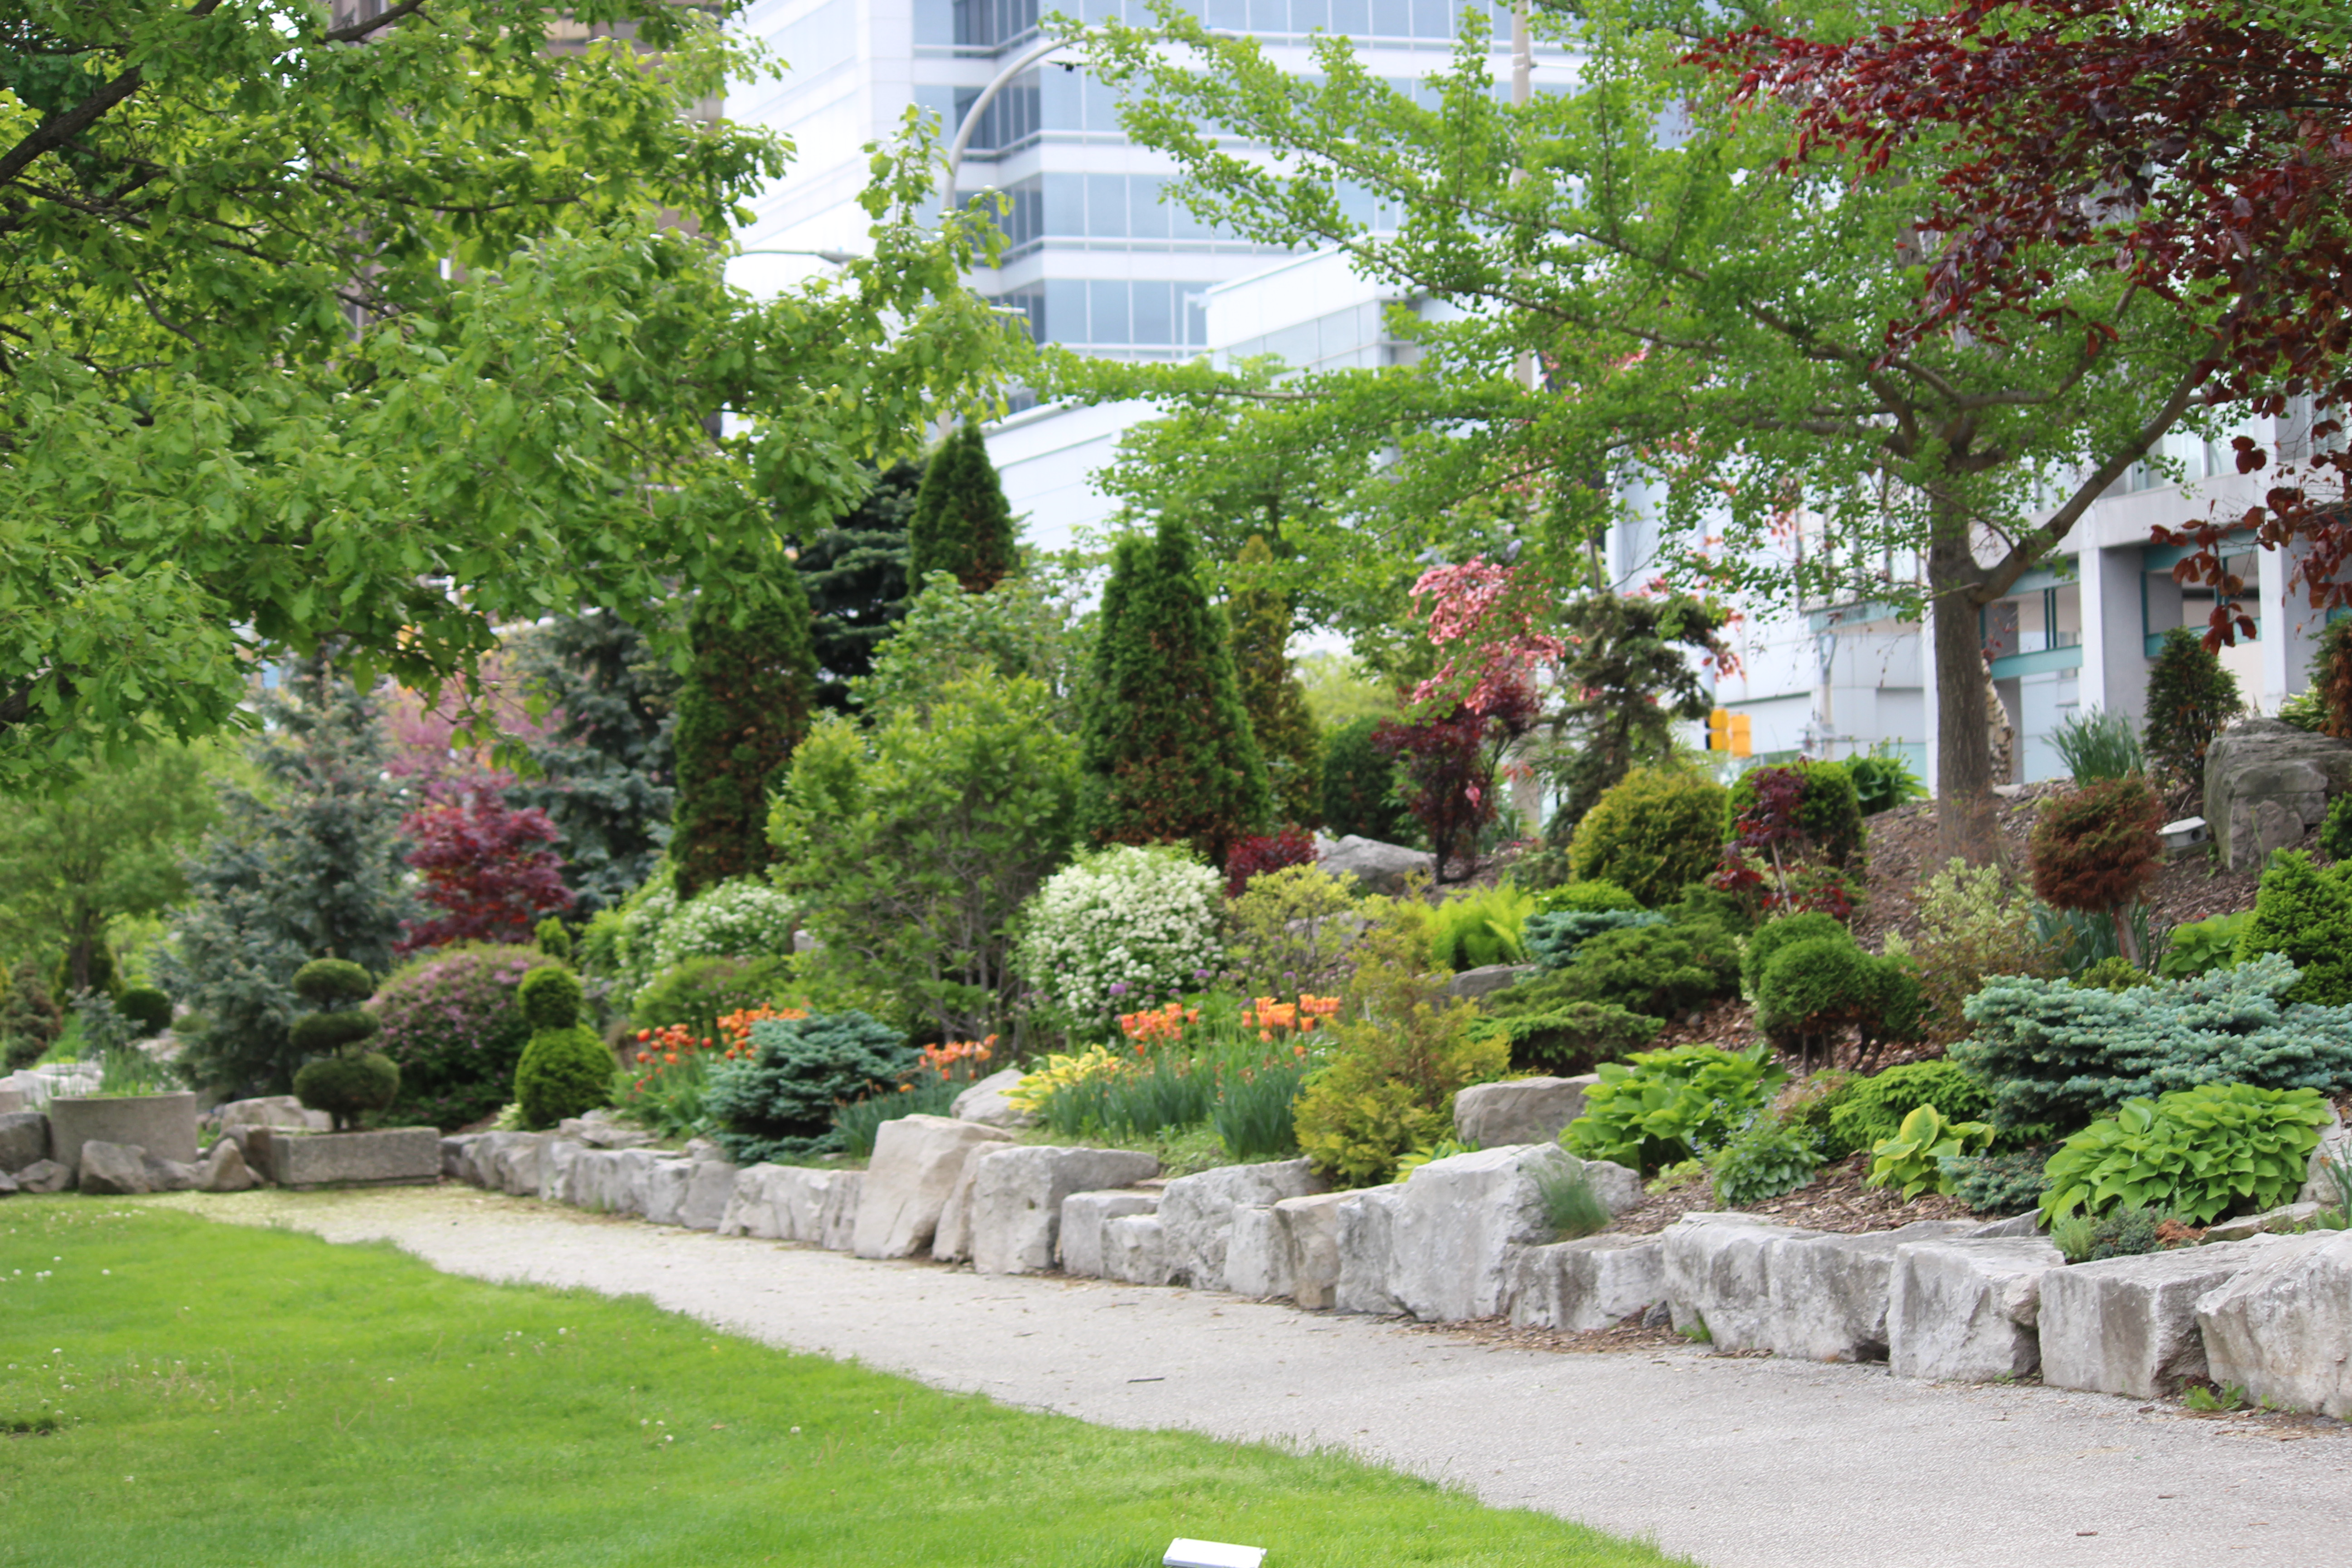 A City of Windsor garden in Dieppe Park May 20, 2015. (Photo by Adelle Loiselle)